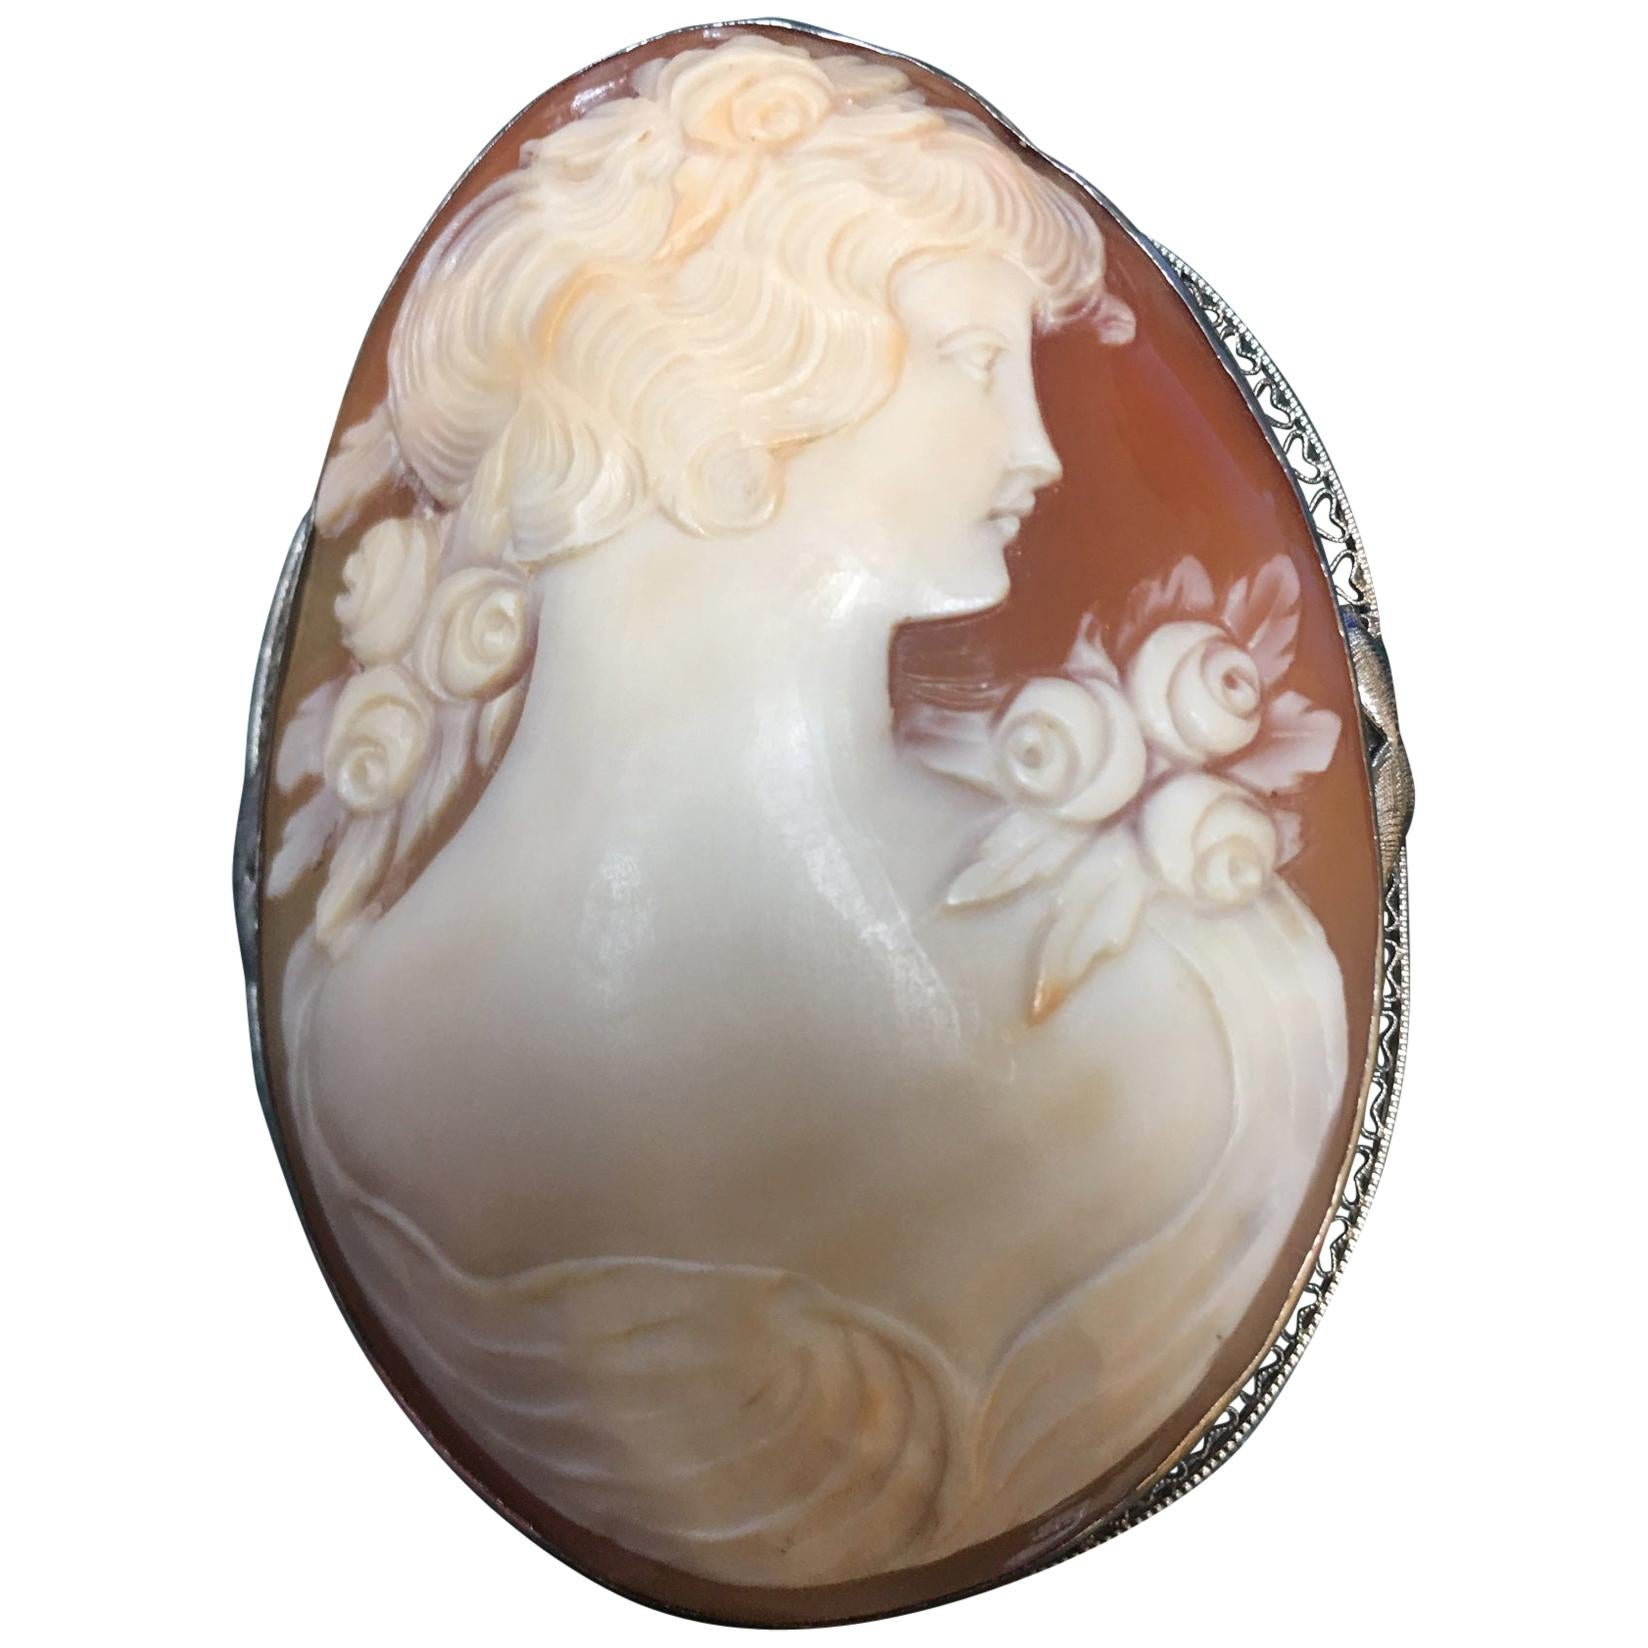 Hand Carved Shell Cameo Gold Art Deco Style Brooch Pin Pendant Fine Jewelry